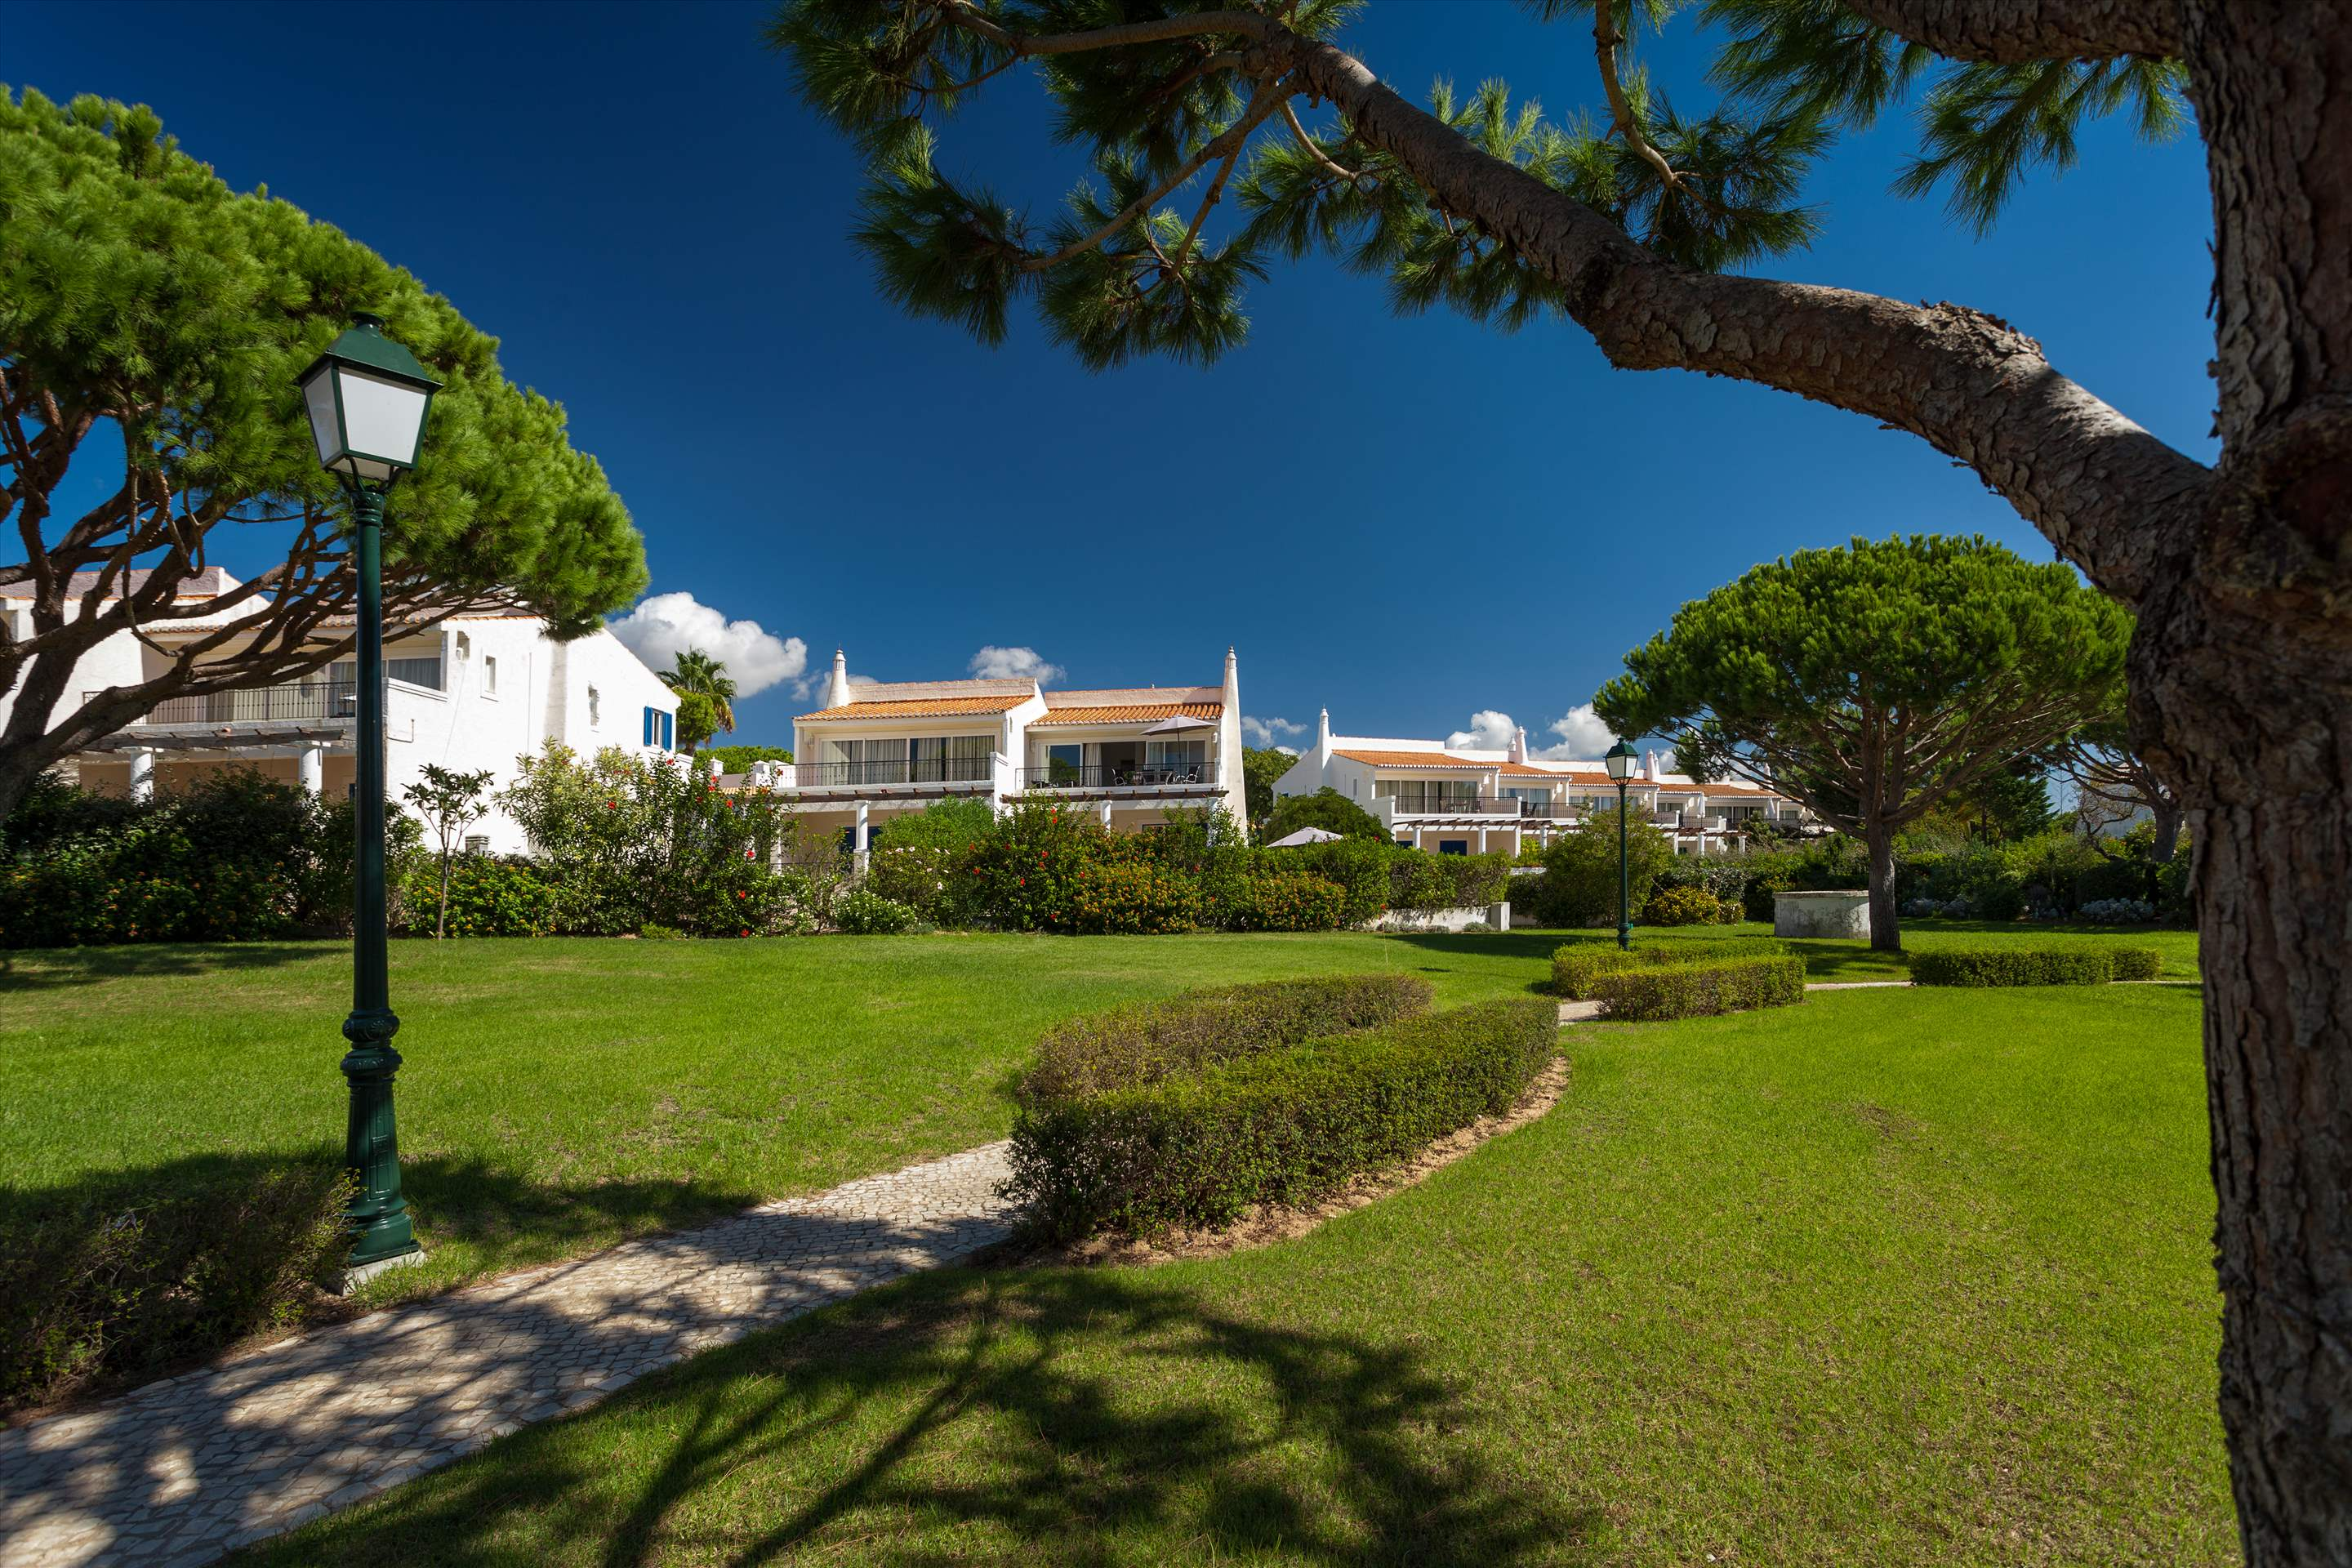 Villa Marisol, 3 bedroom villa in Vale do Lobo, Algarve Photo #19